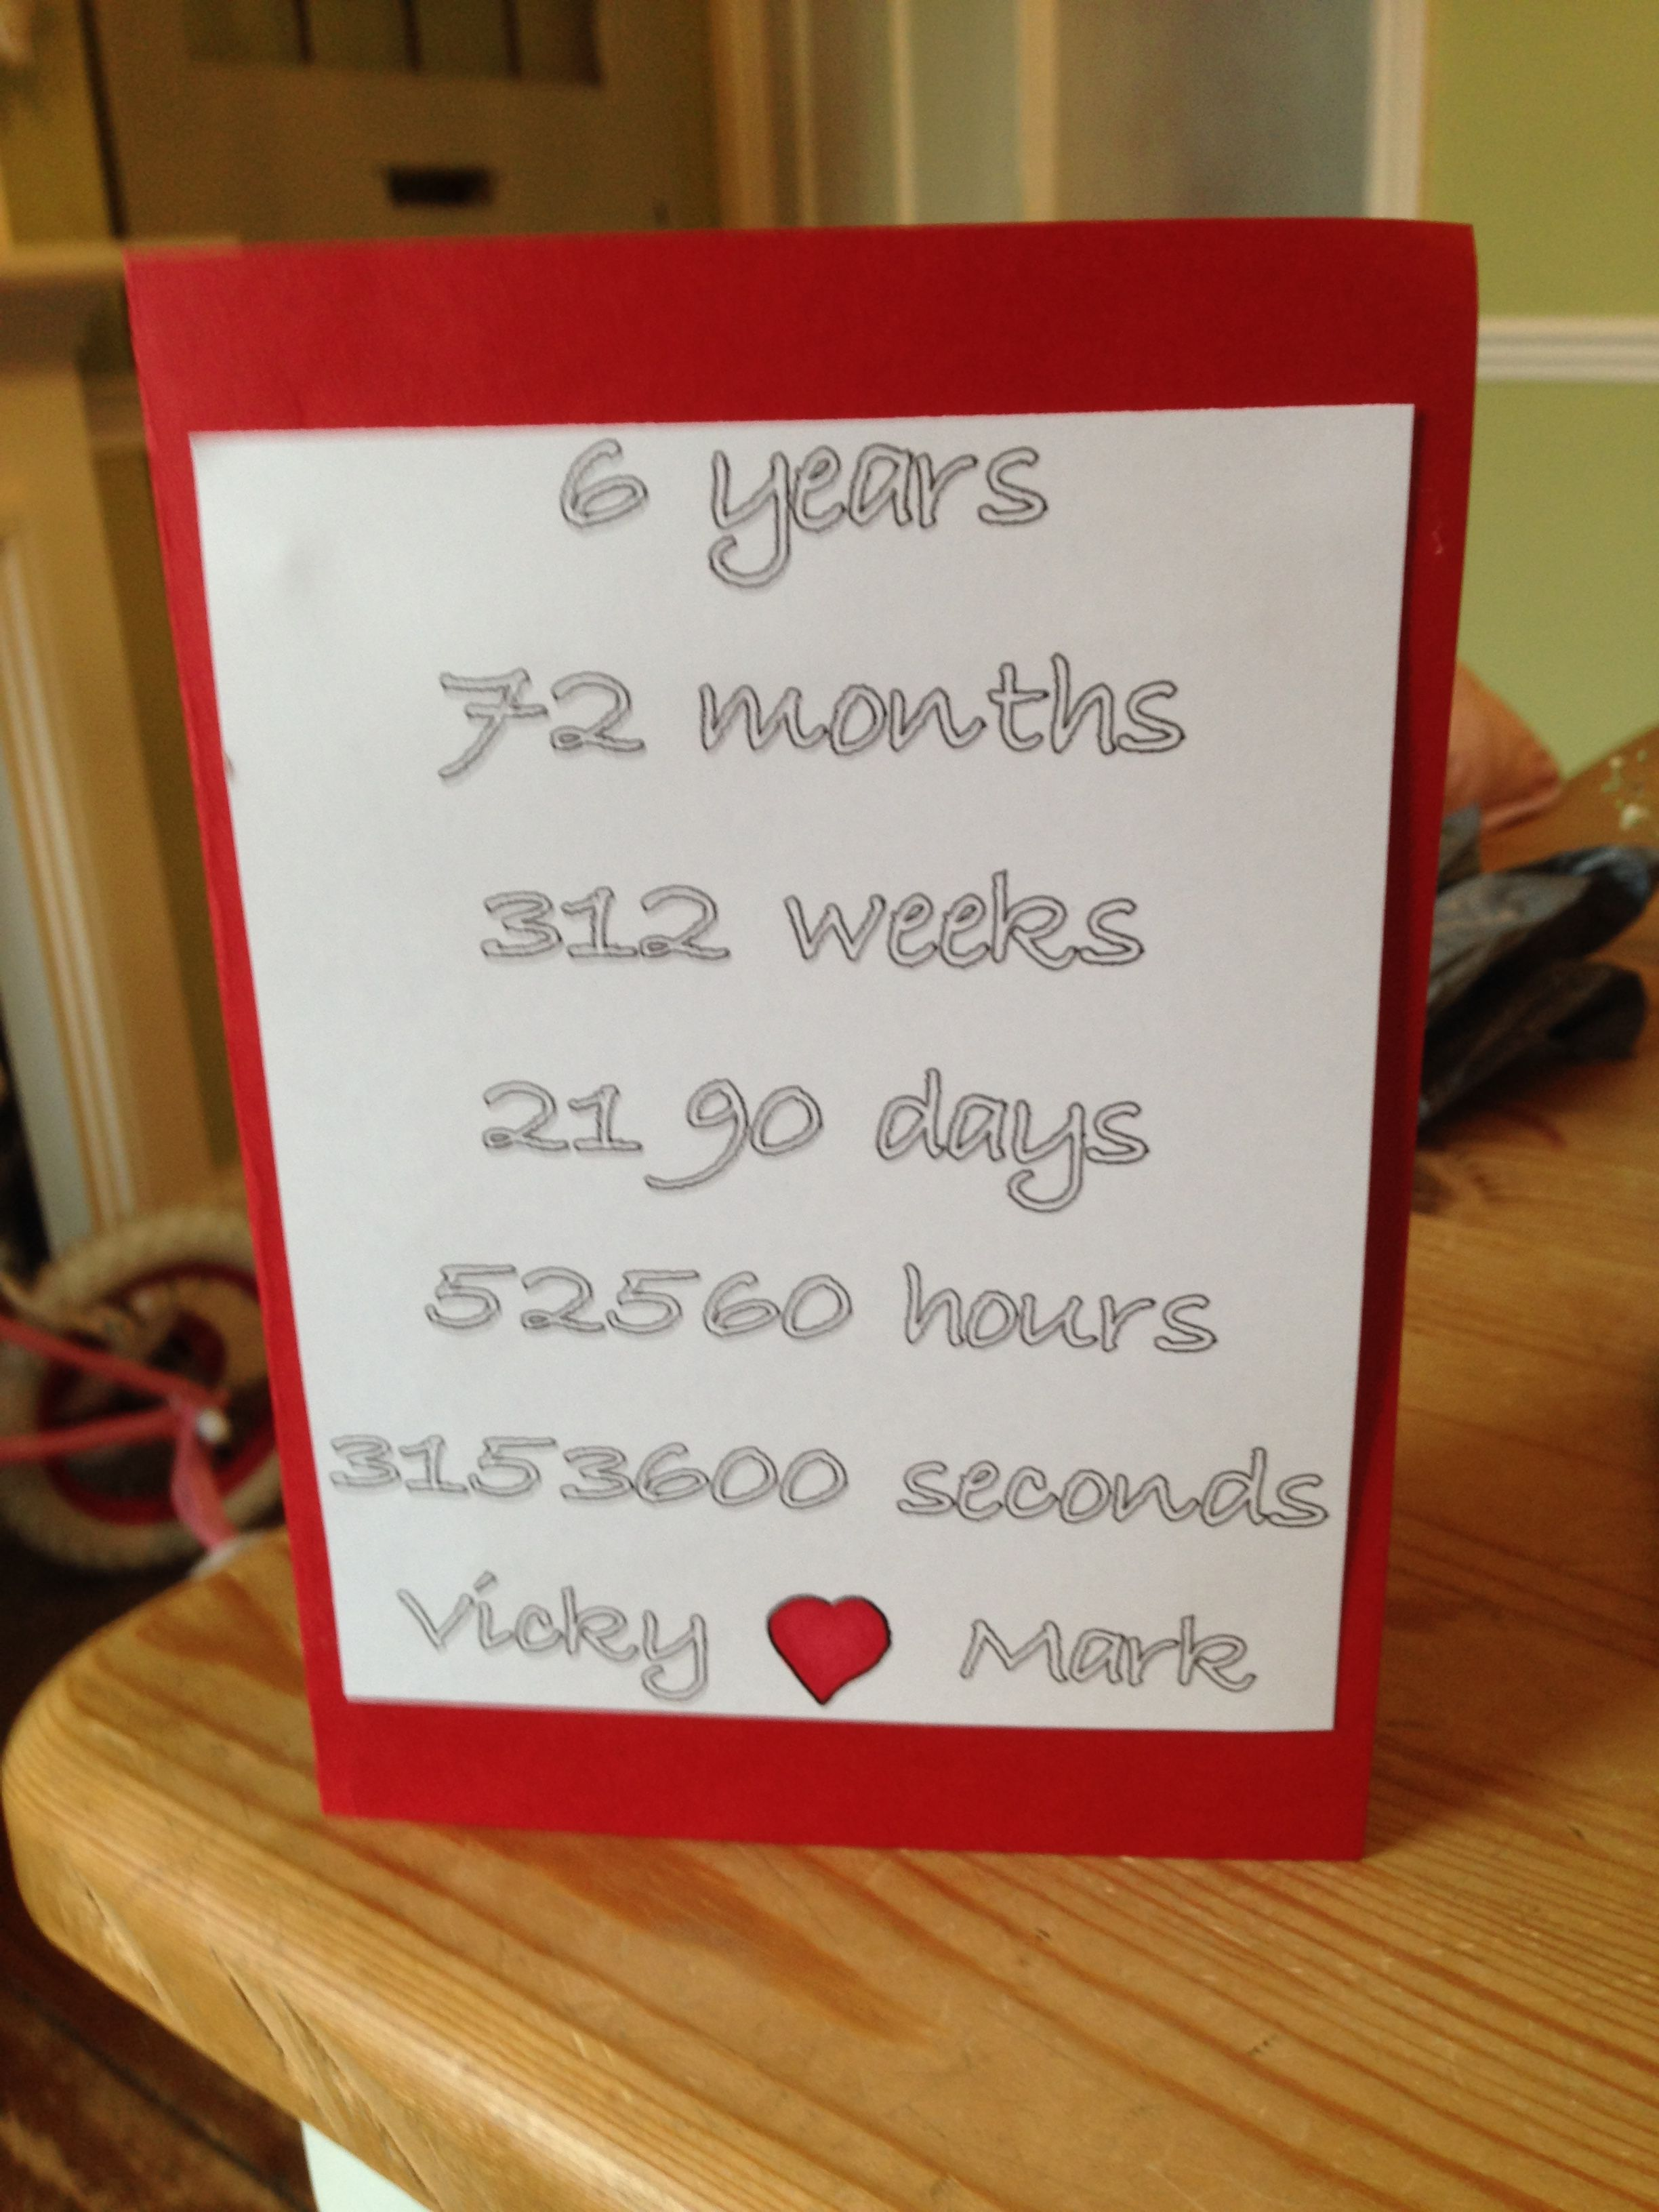 6 Year Anniversary Card Love It 6th Anniversary Gifts